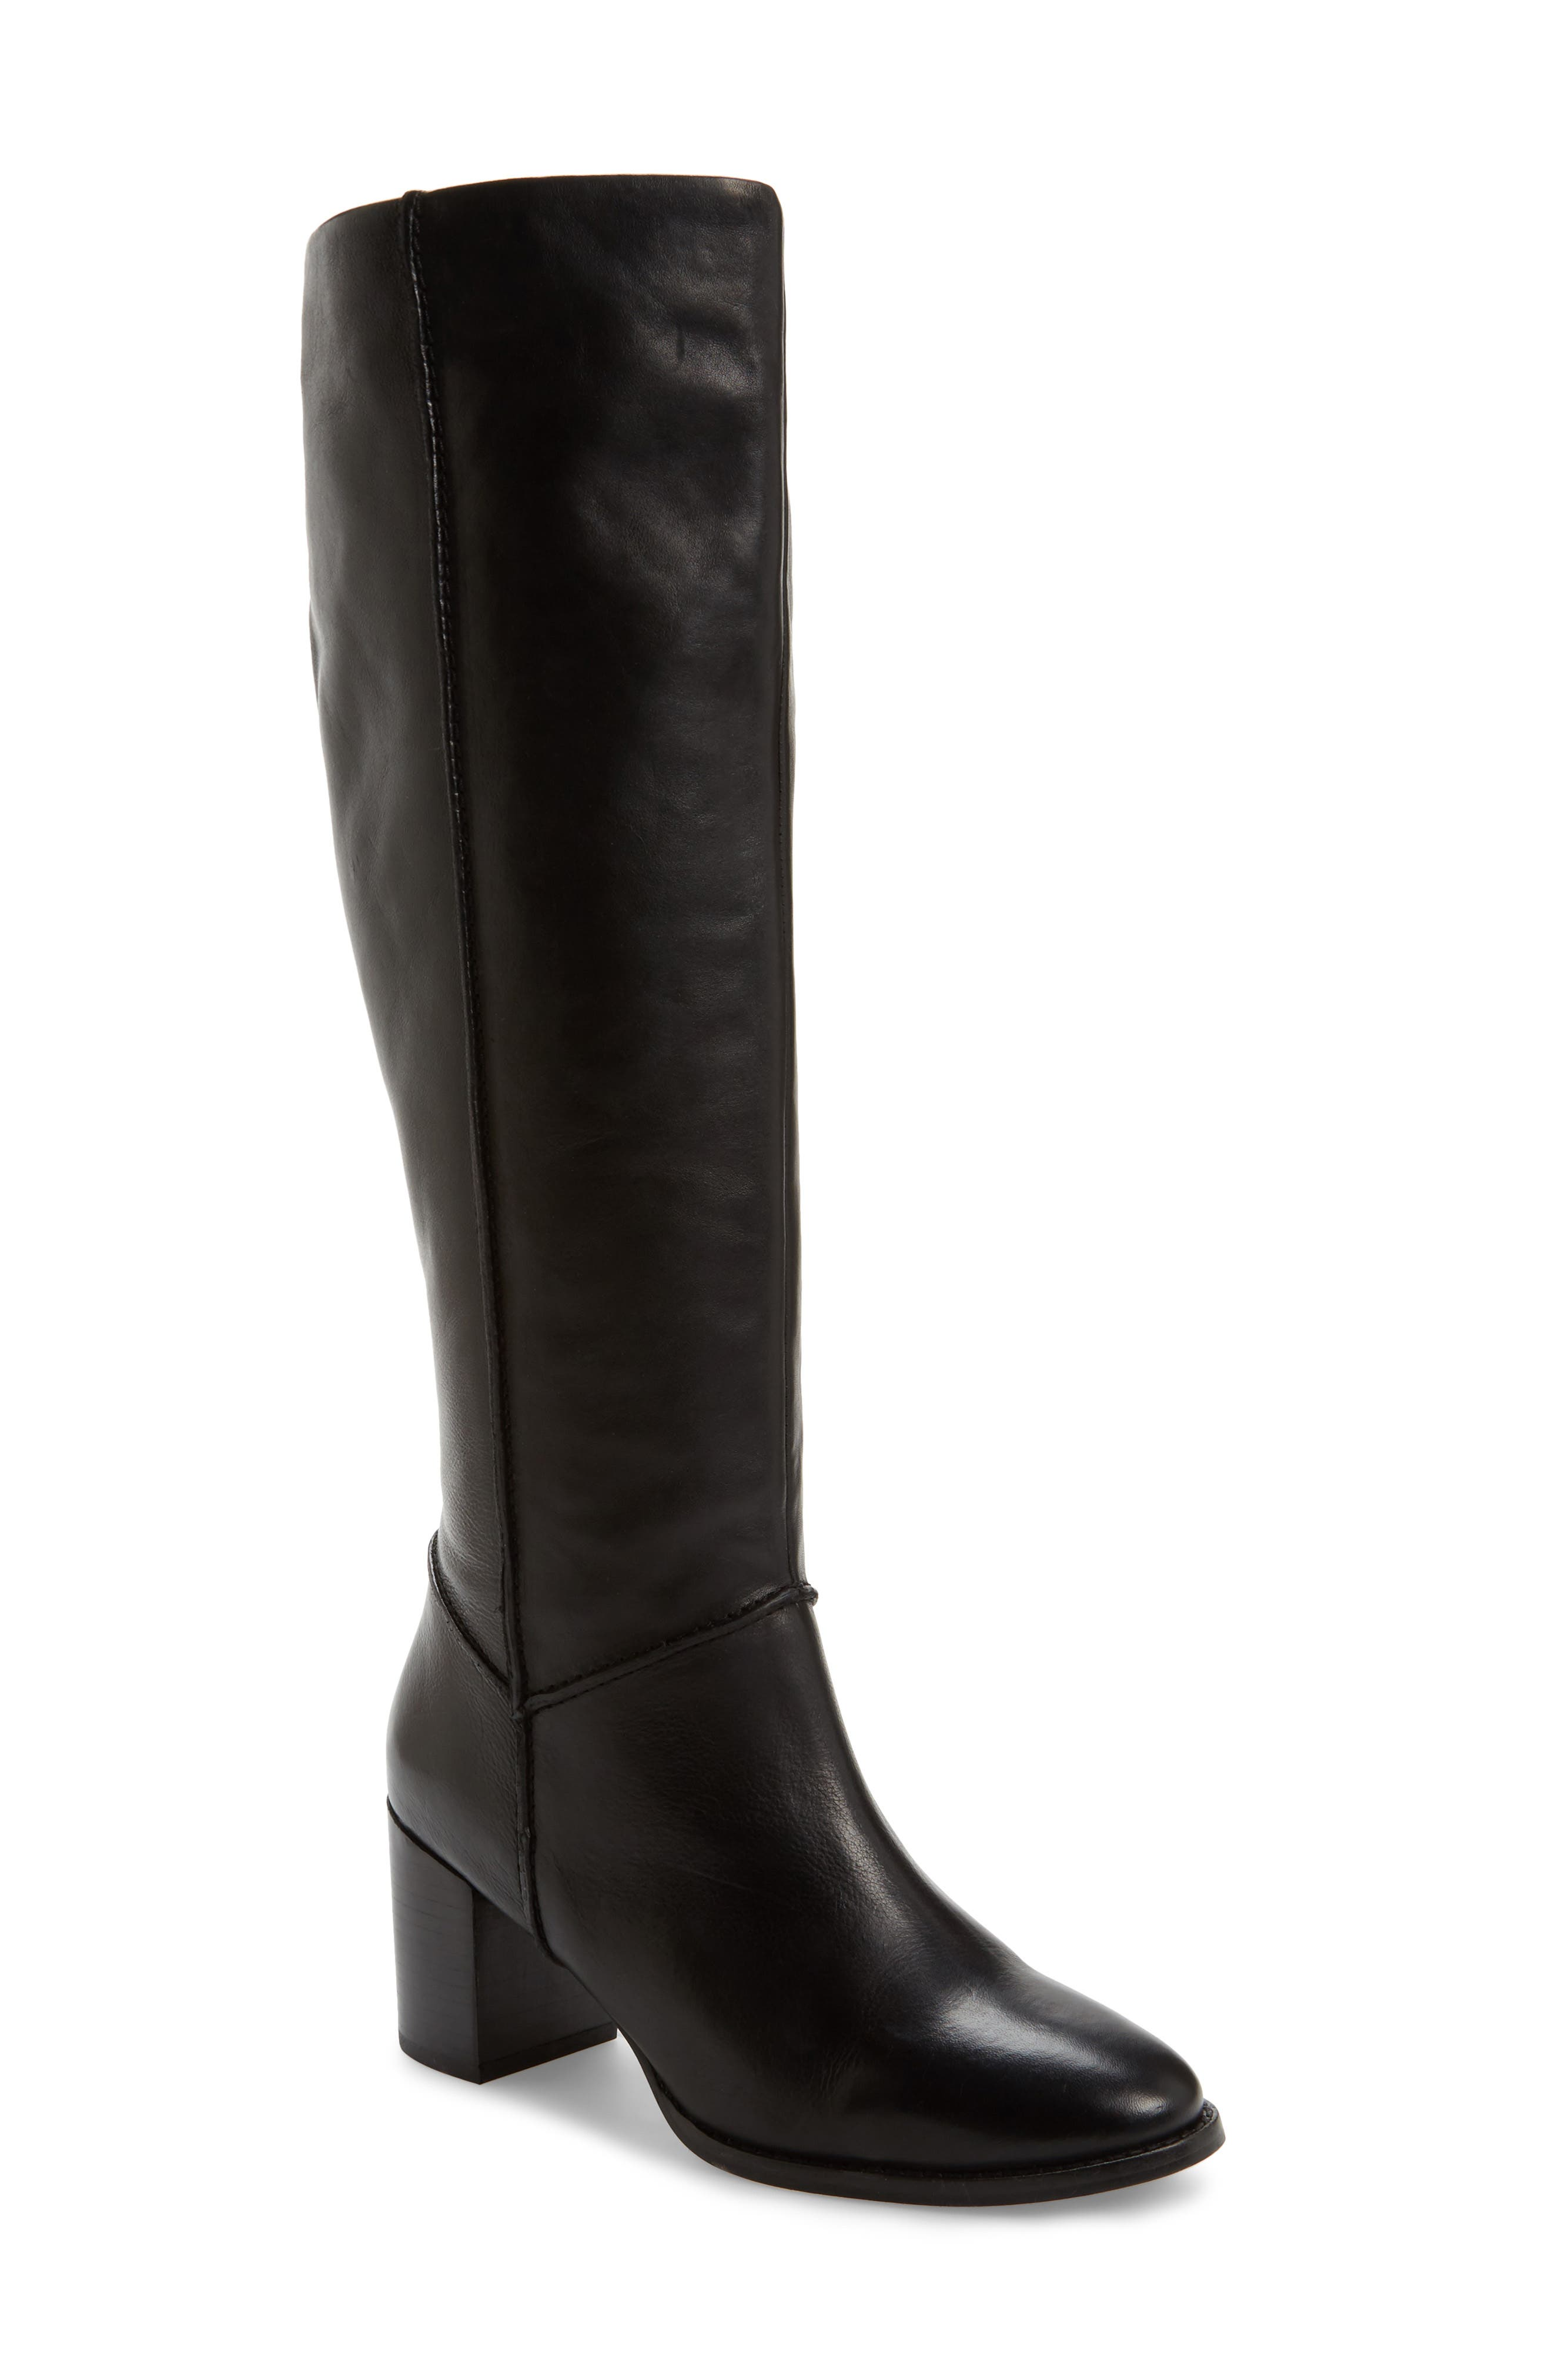 Final Bow Boot,                         Main,                         color, Black Leather